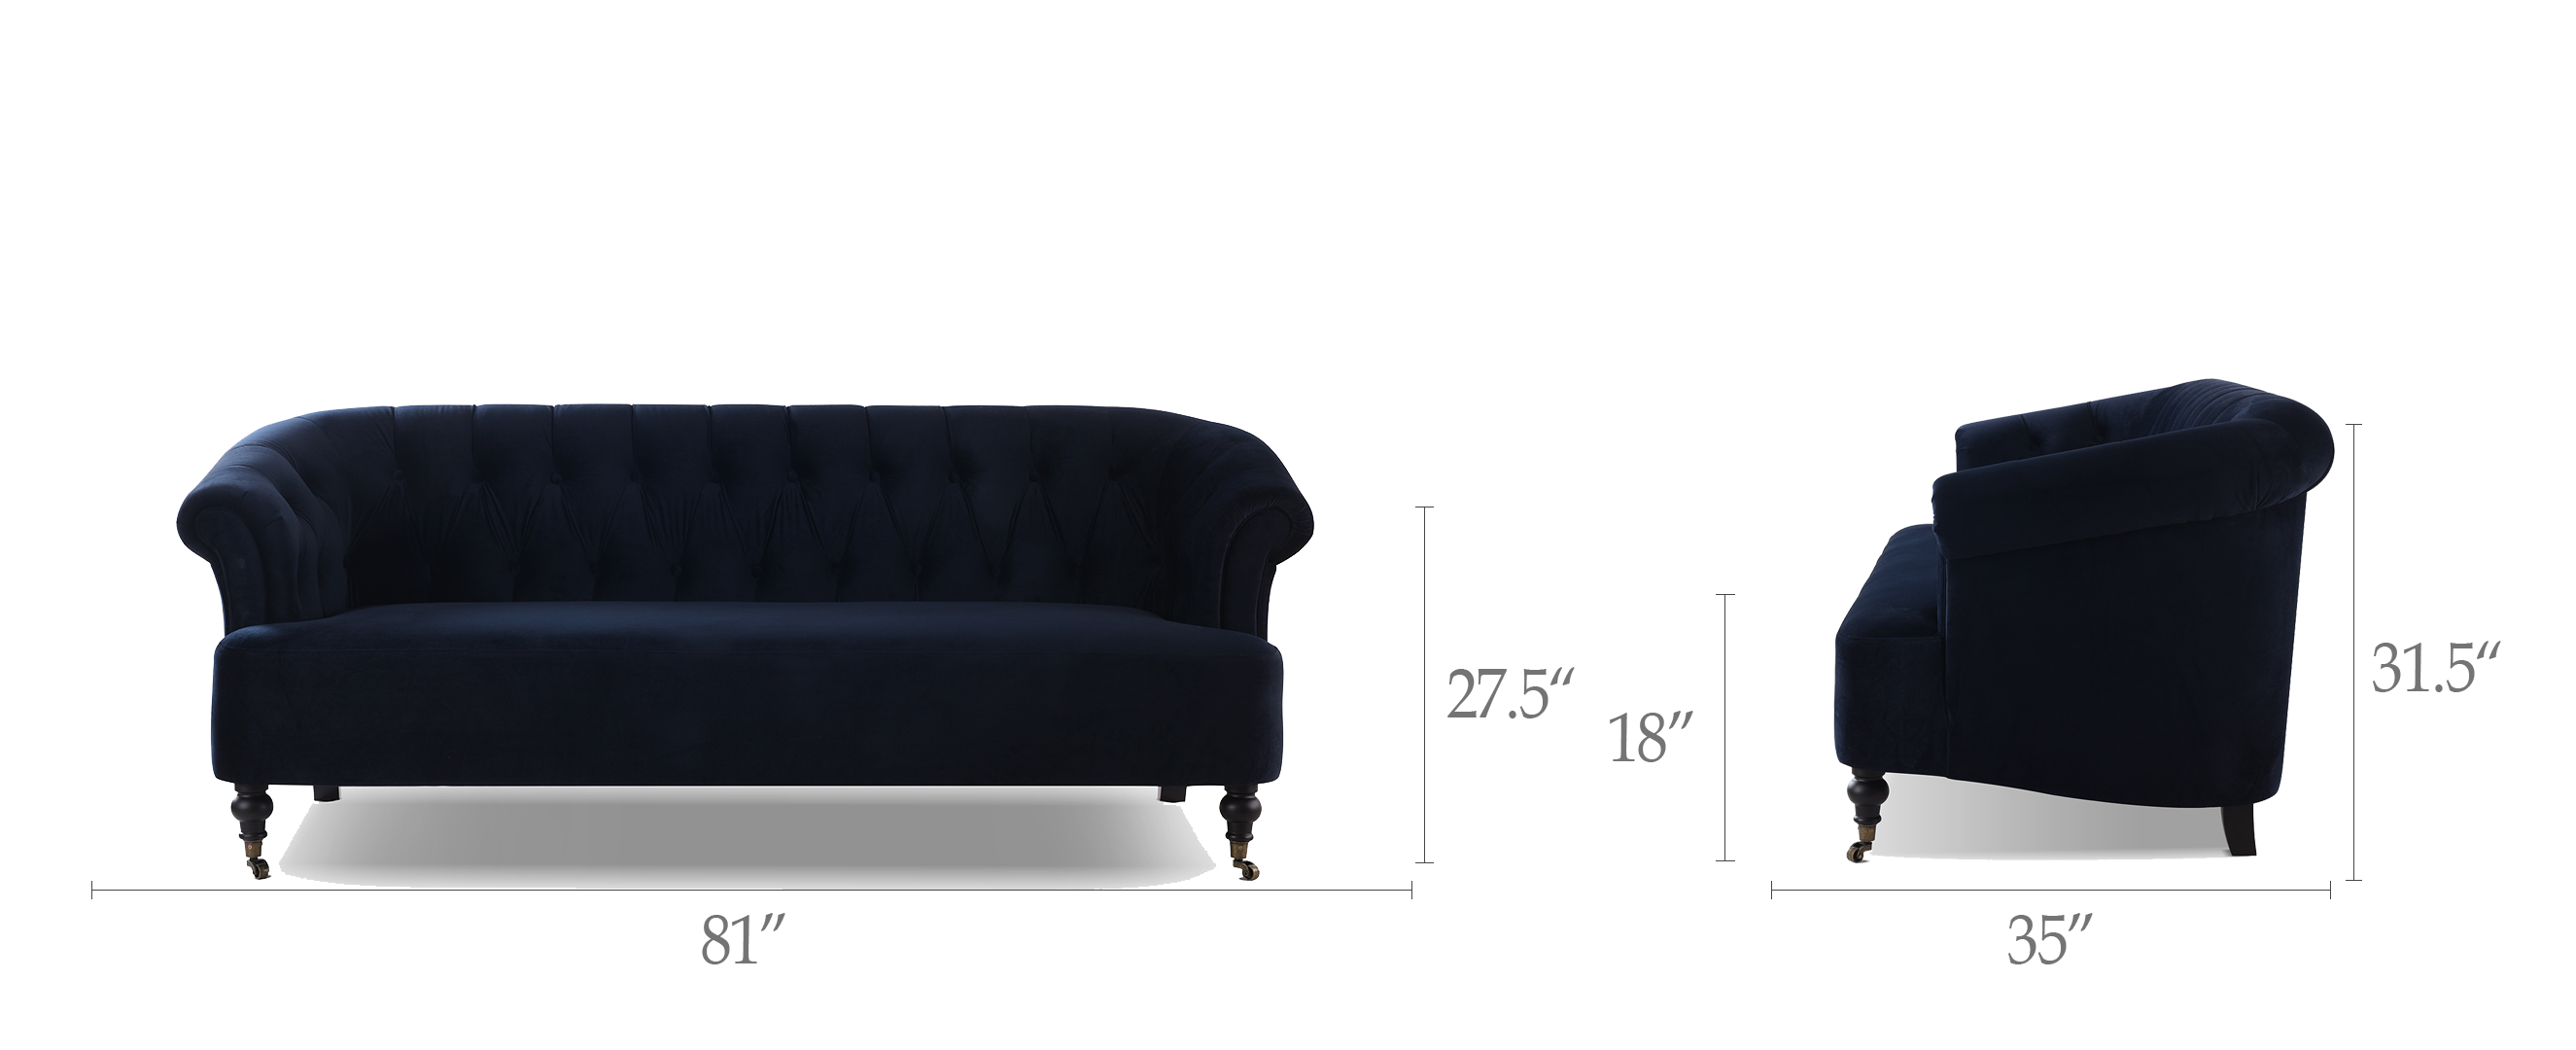 Maxine Tufted Upholstered Sofa